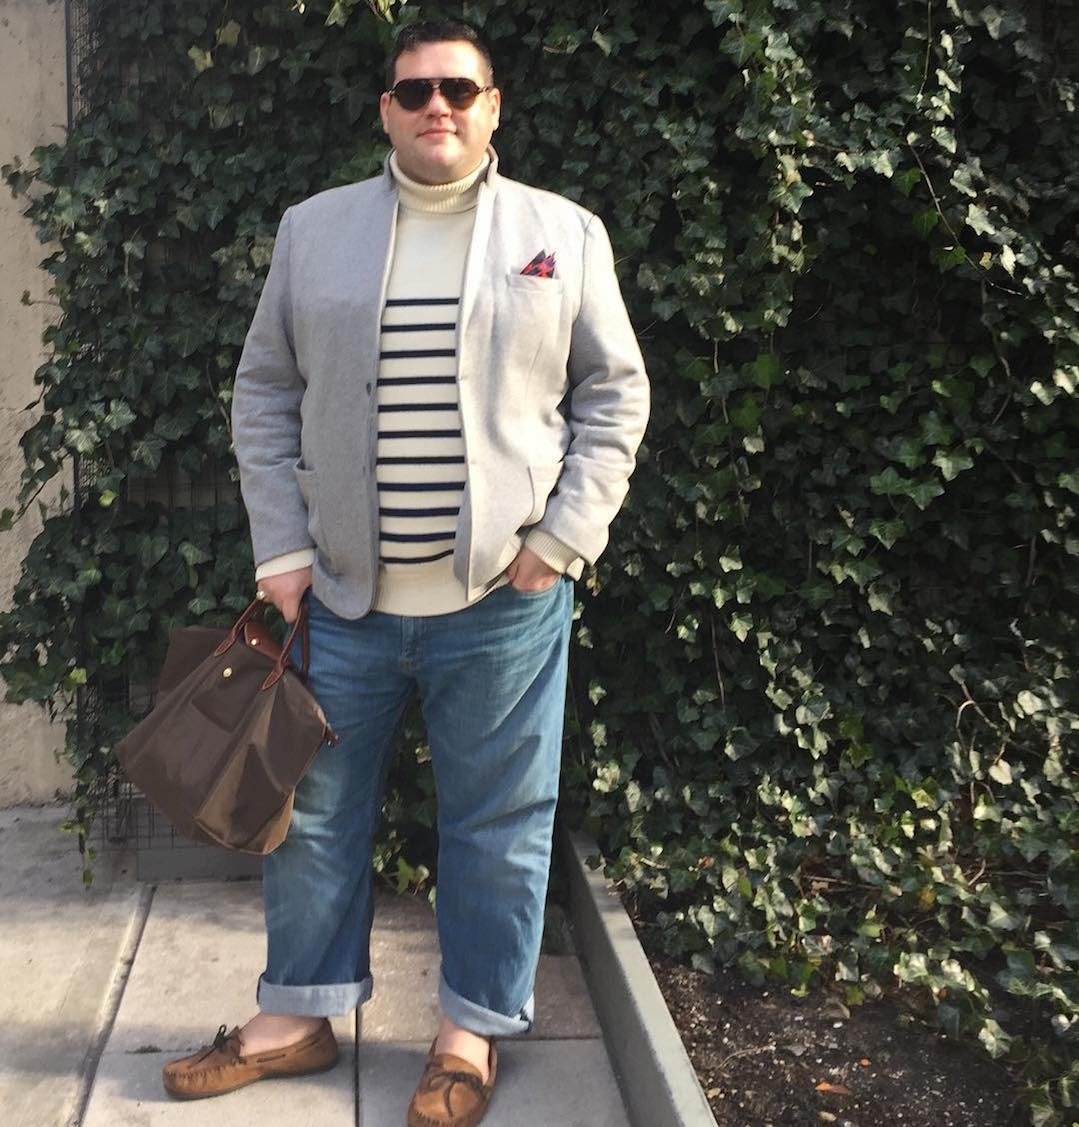 Ryan Dziadul with striped sweater, jacket, jeans, pocket square